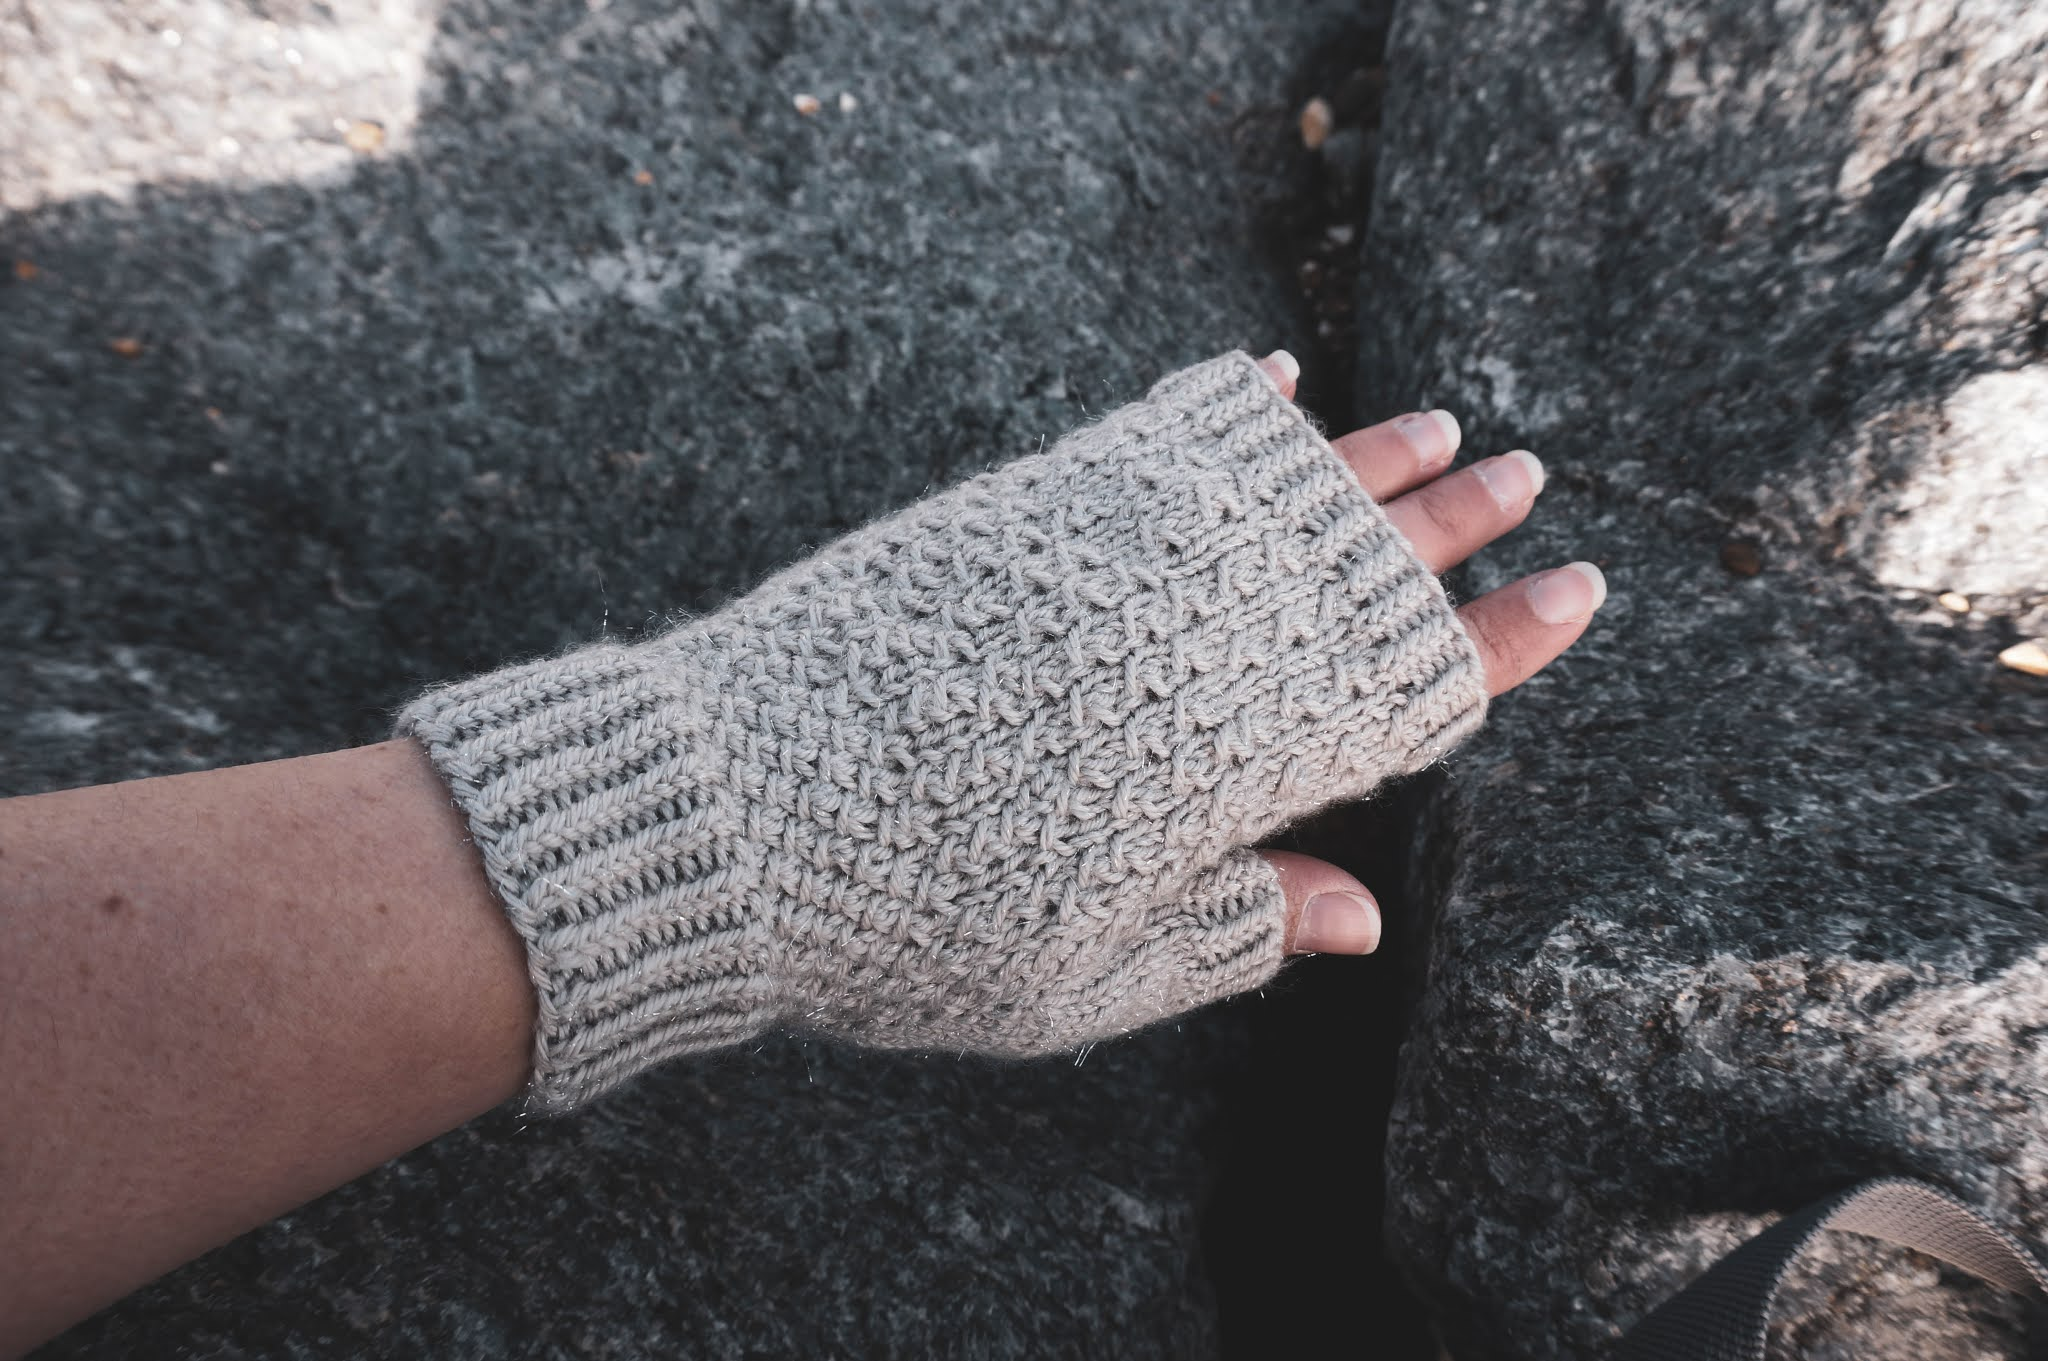 Bay City Mitts knitting pattern by West Beach Knits